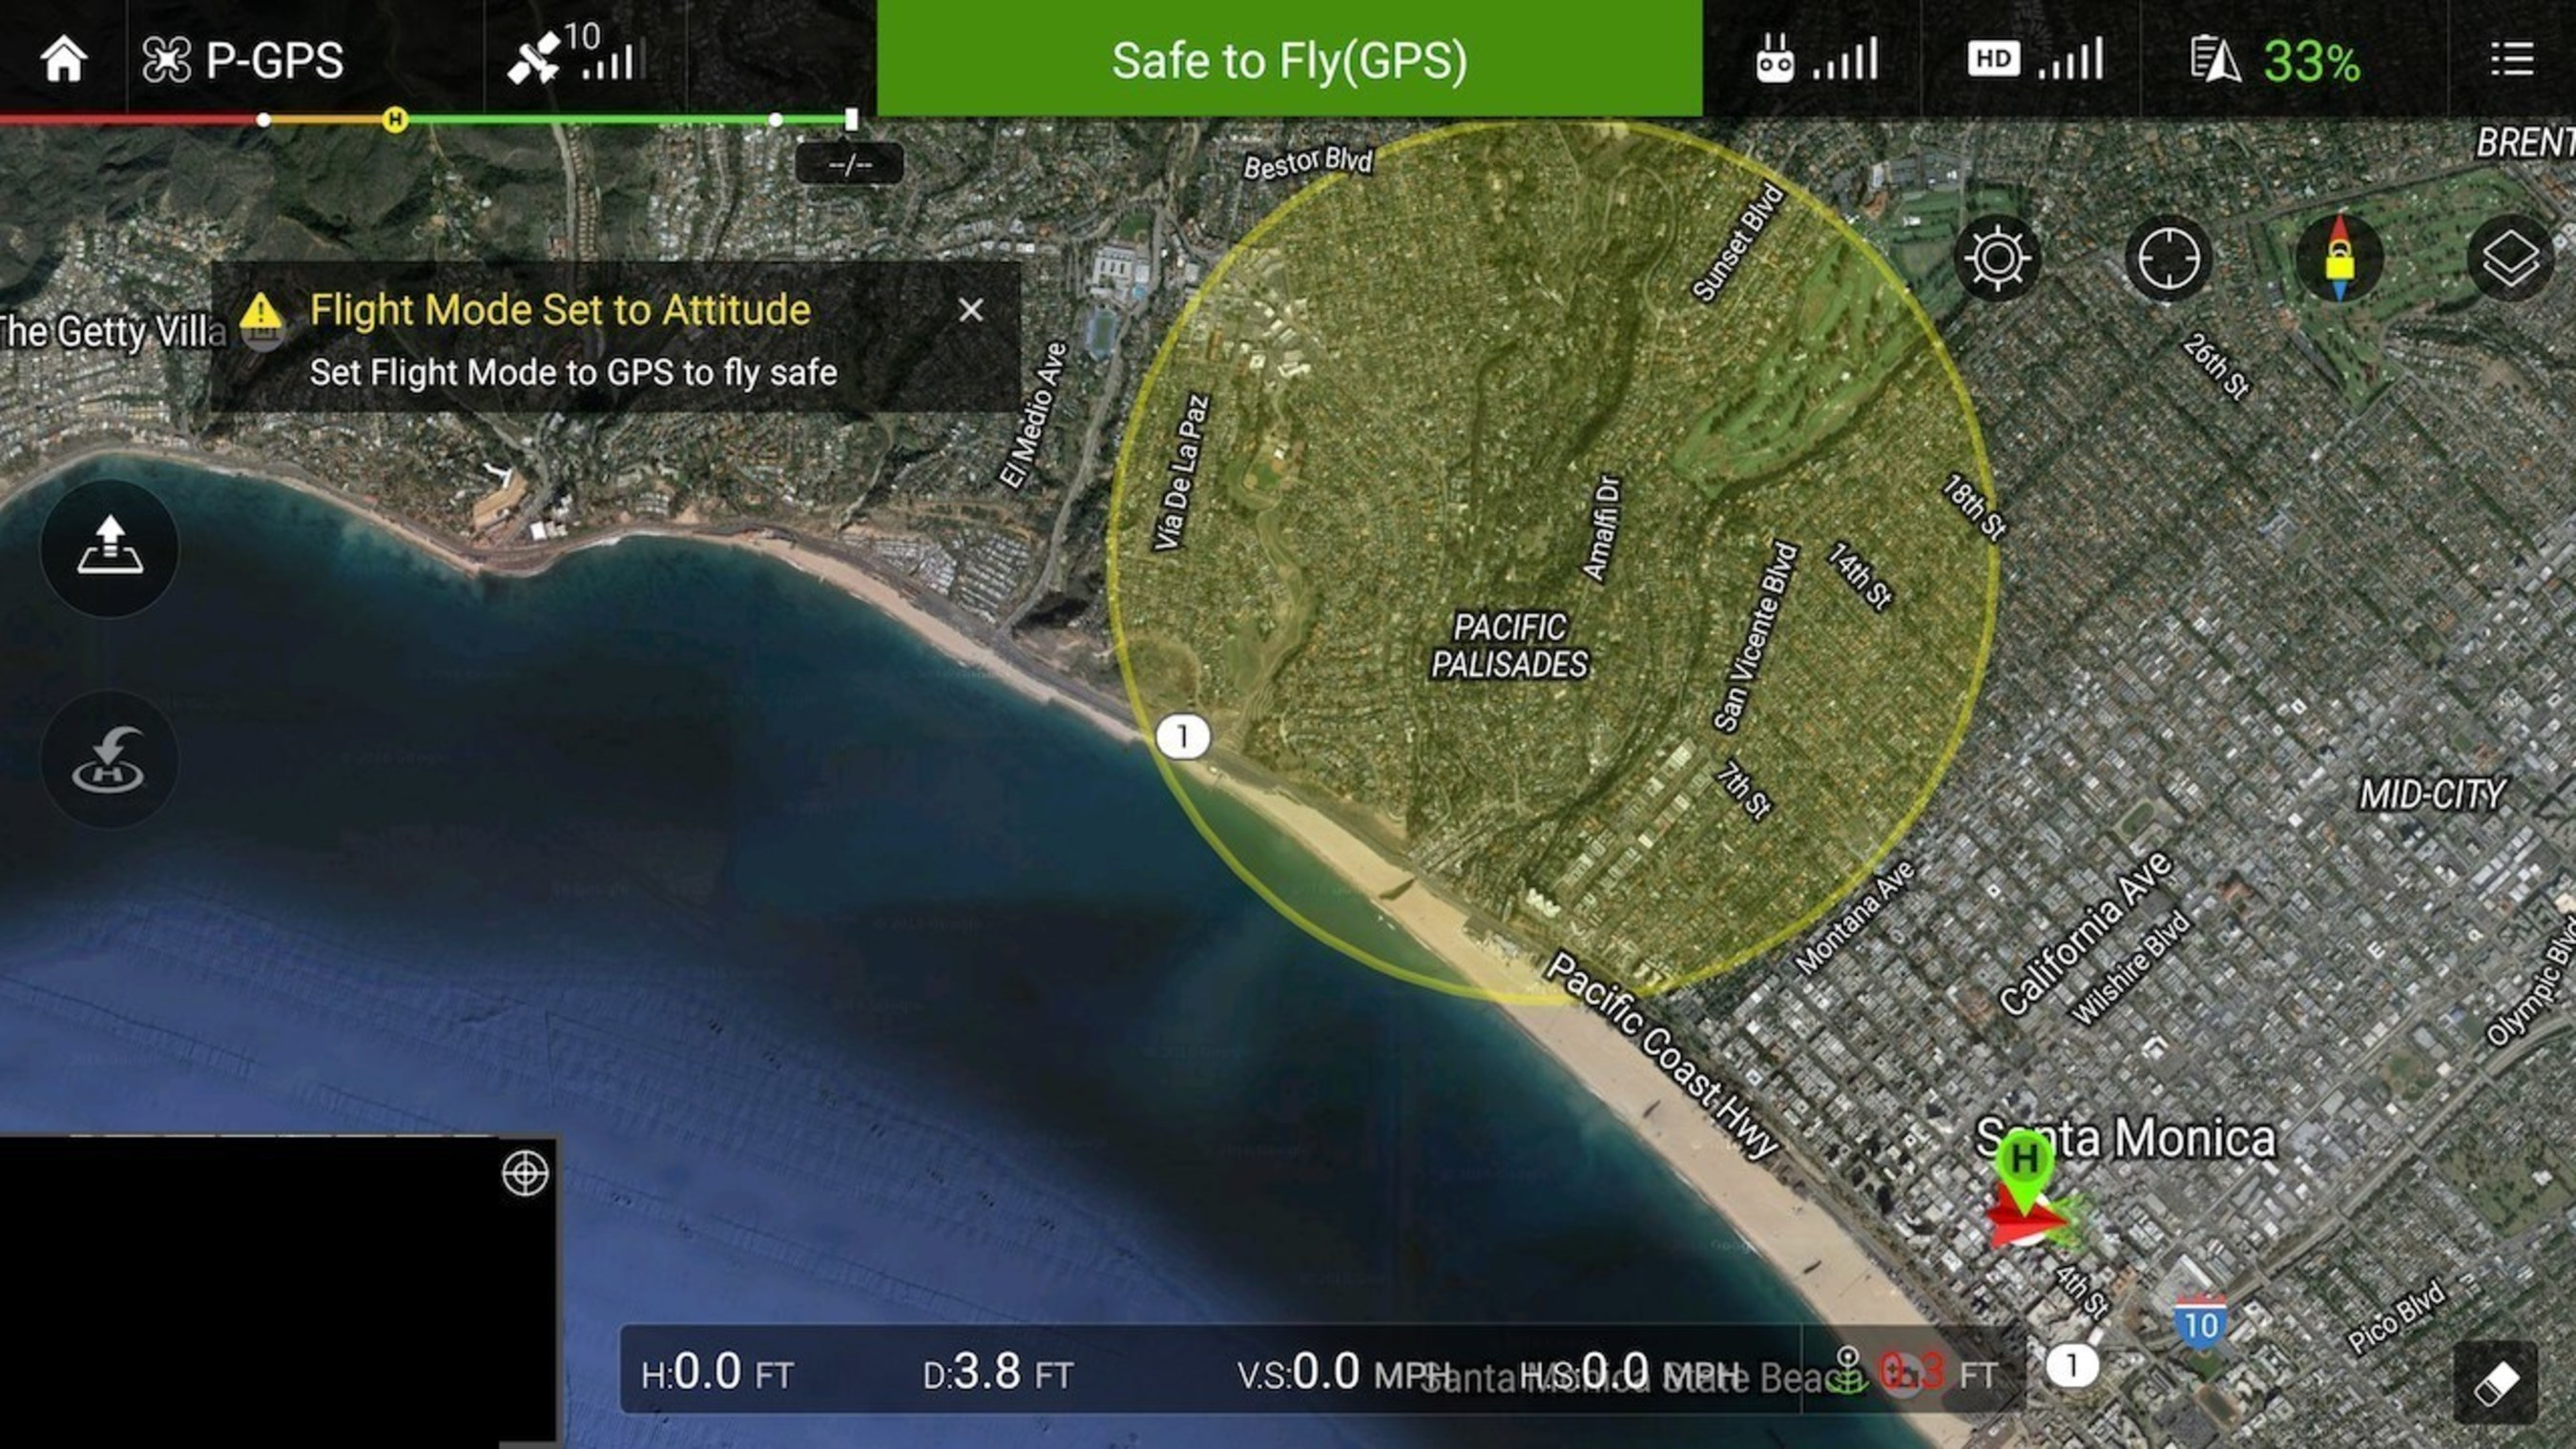 AirMap pushes real-time wildfire updates to drone operators, DJI's geofencing capabilities prevent drone incursion